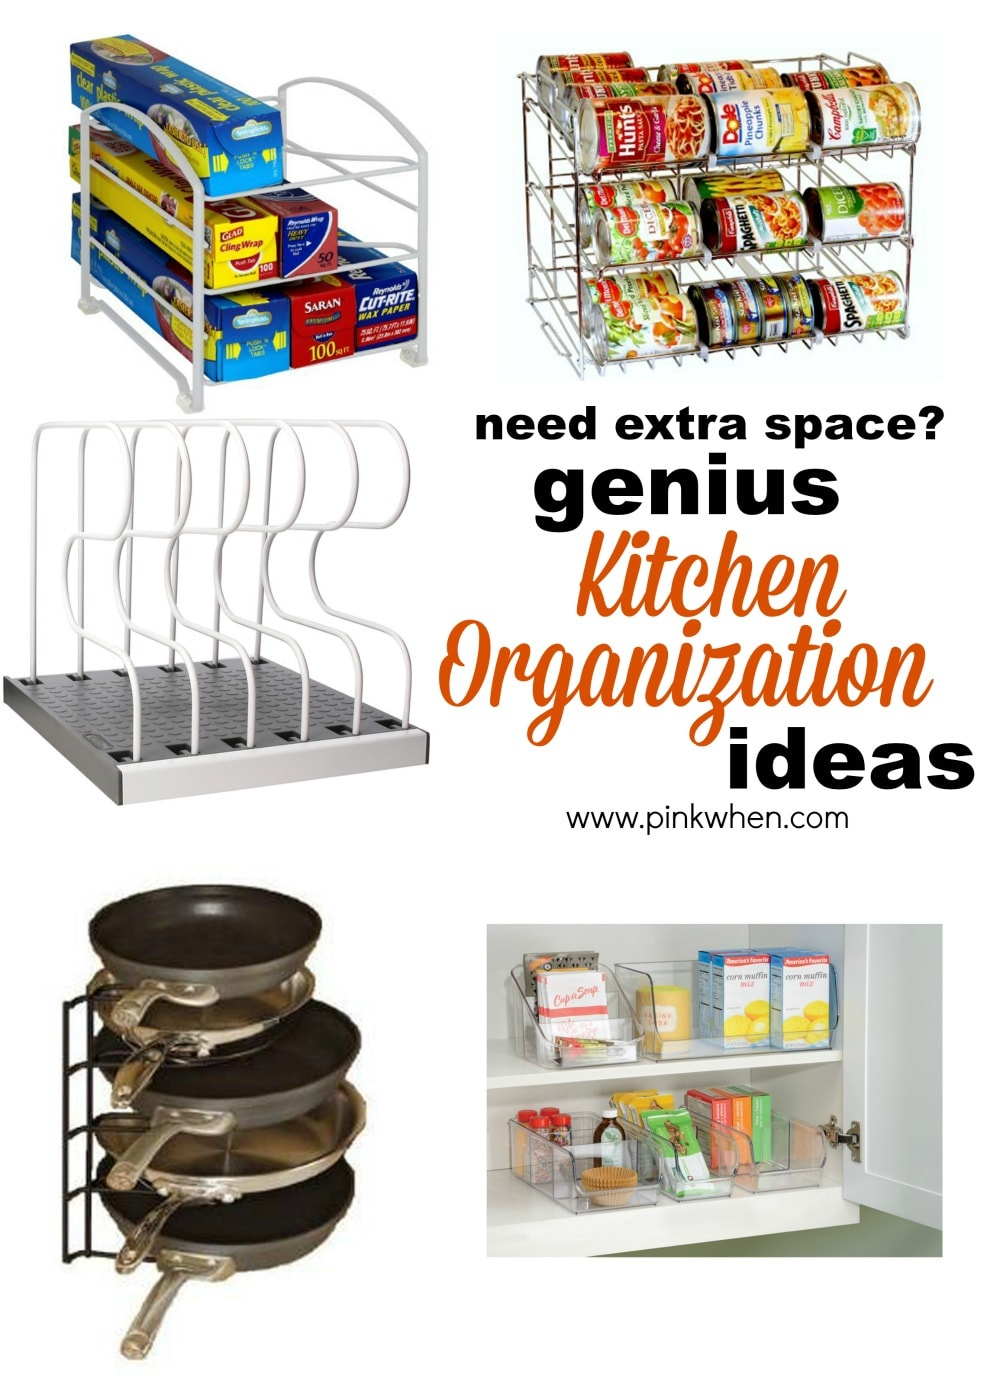 Genius ideas for organizing the kitchen pinkwhen for Kitchen ideas organizing